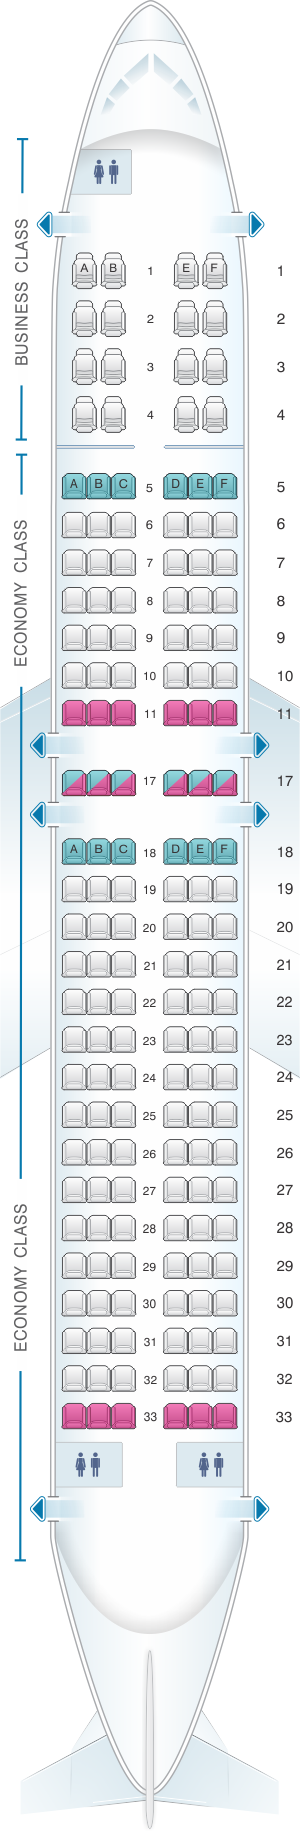 Seat map for Copa Airlines Boeing B737 800A